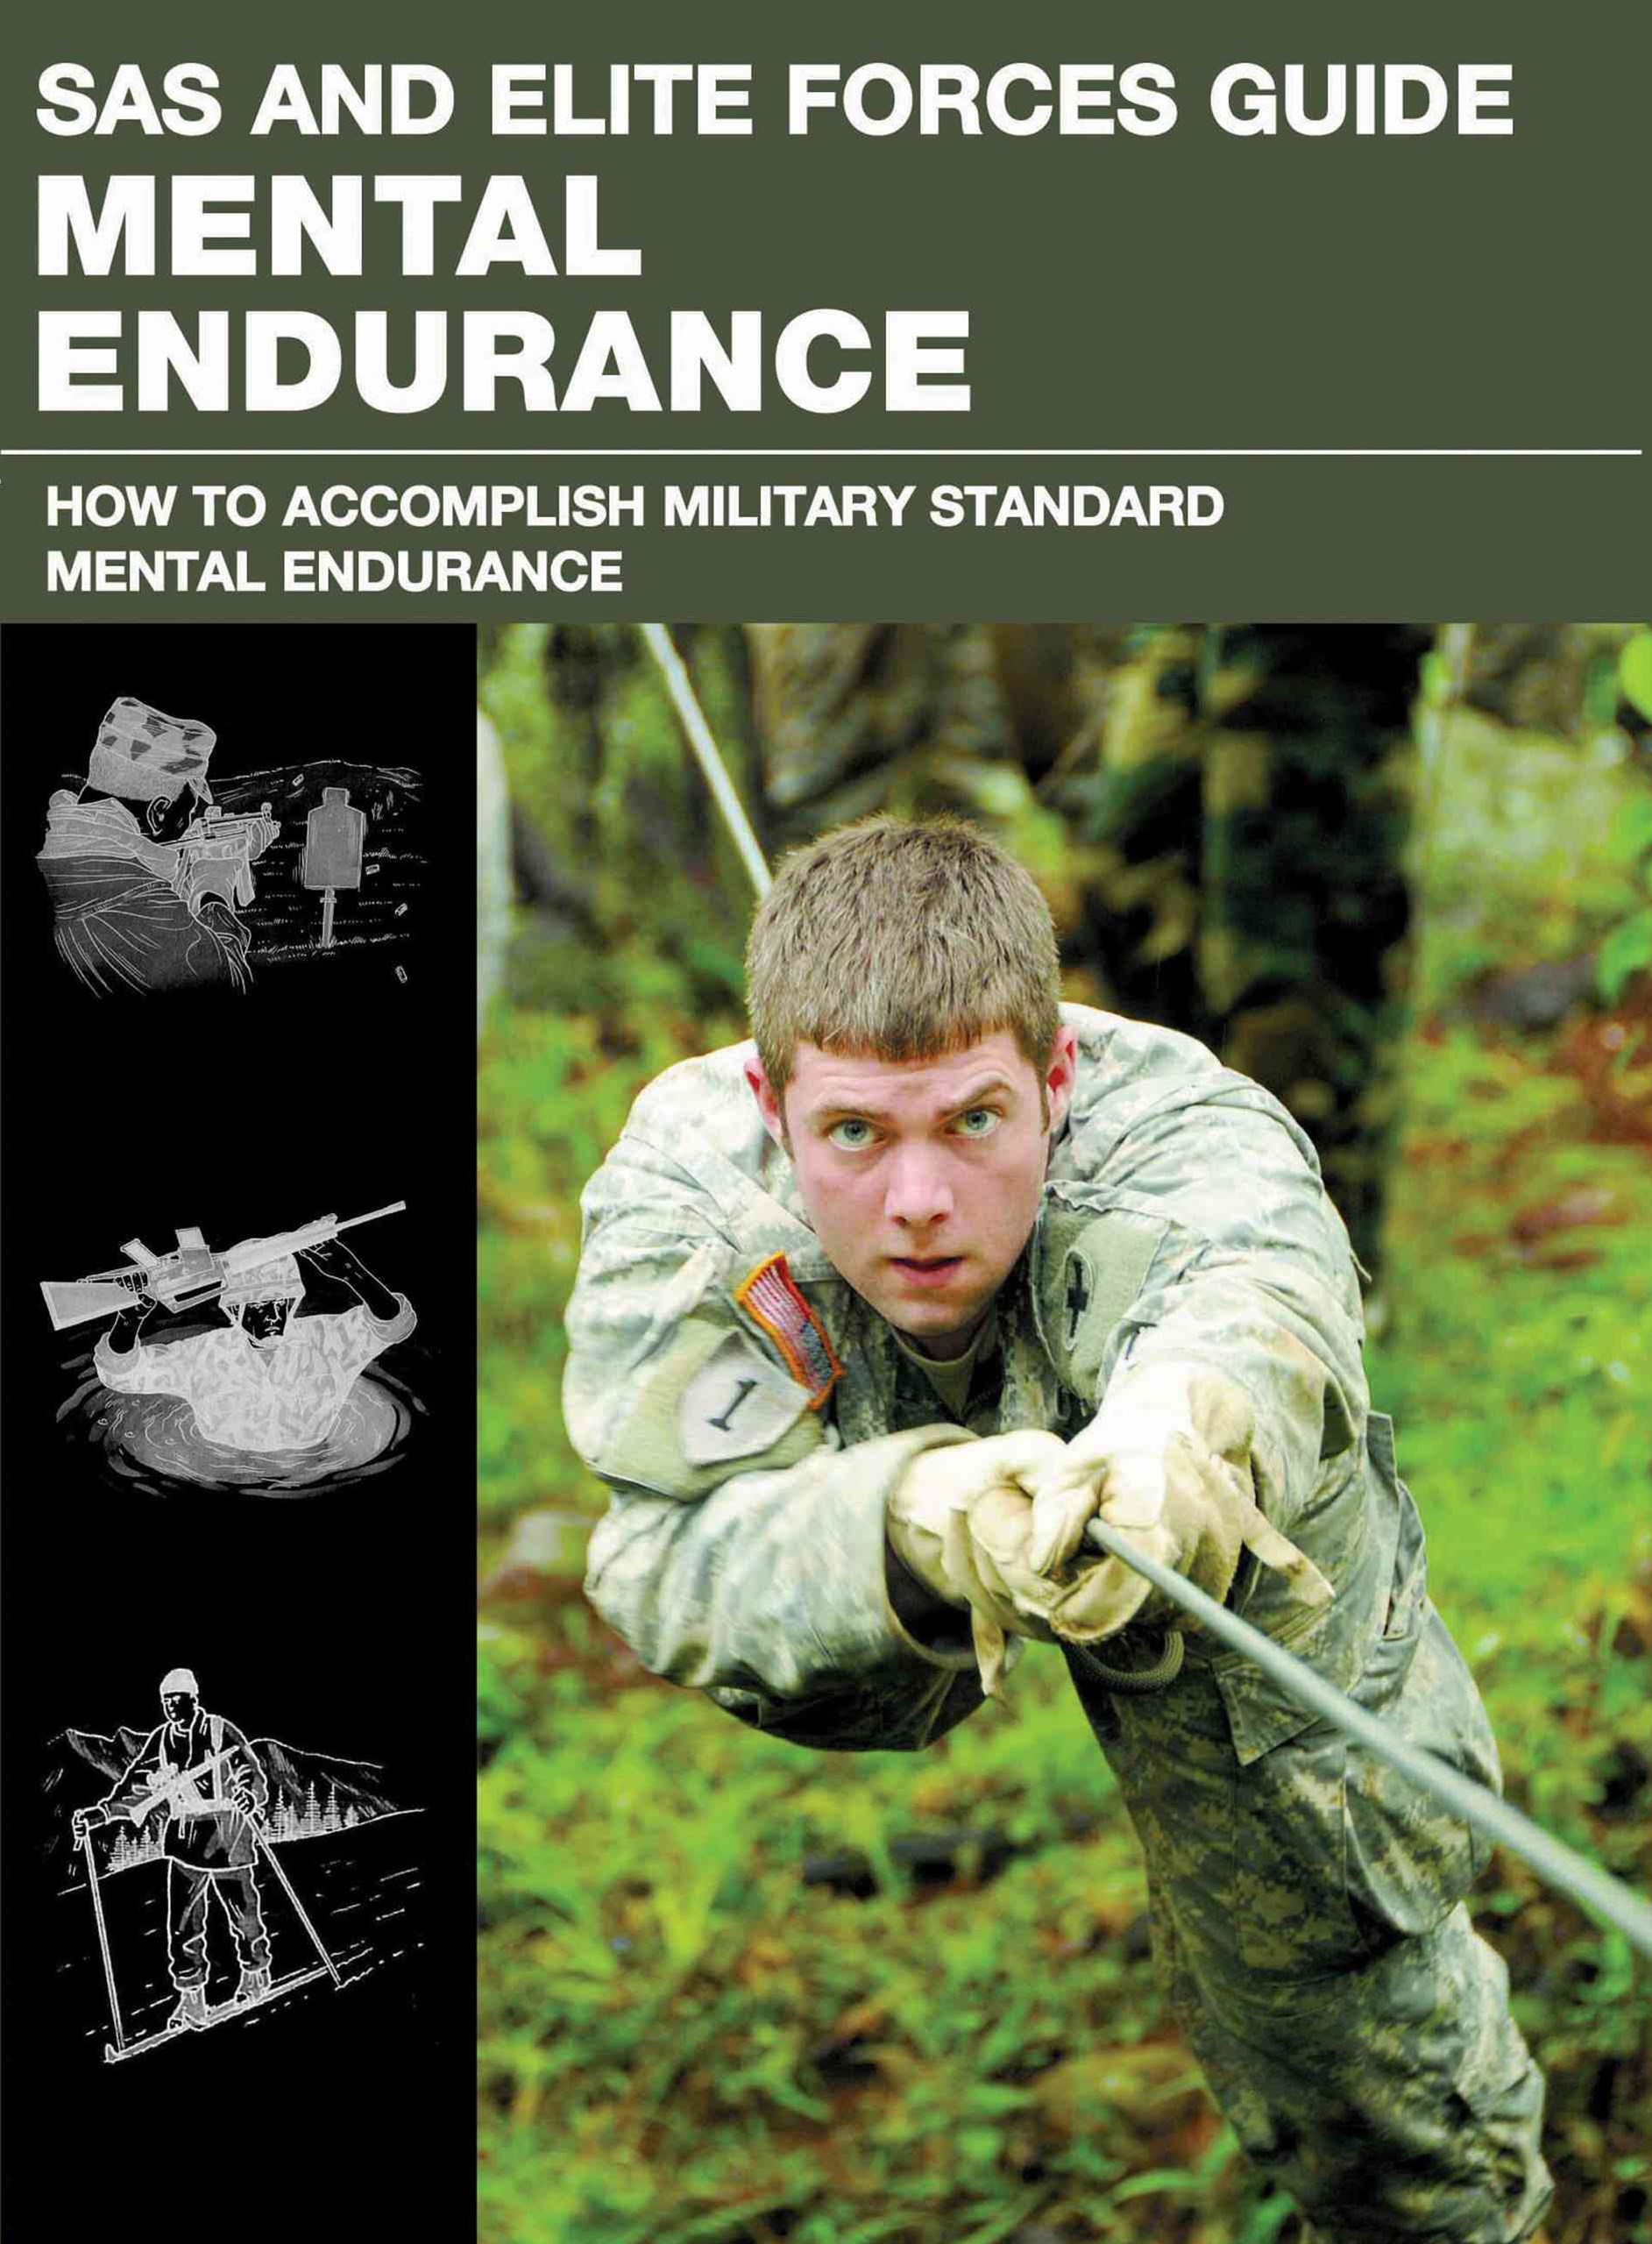 SAS and Elite Forces Guide Mental Endurance